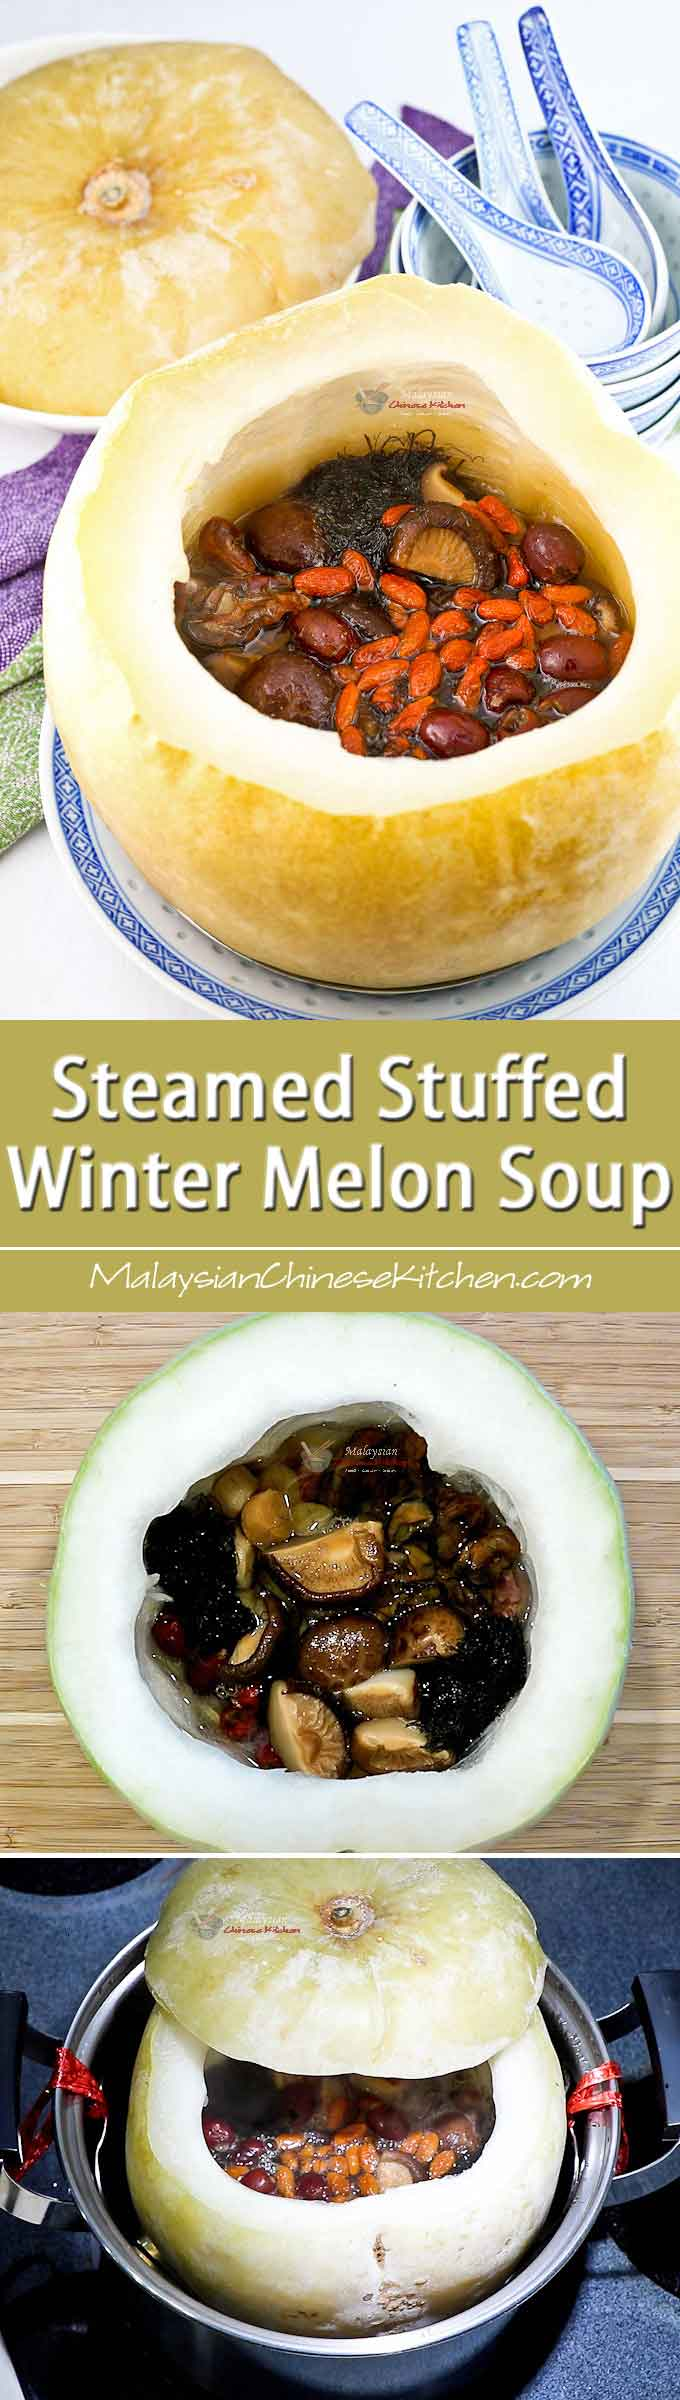 Make this special Steamed Stuffed Winter Melon Soup the centerpiece of your table spread for a family reunion or gathering. It is exciting and super delicious!| MalaysianChineseKitchen.com